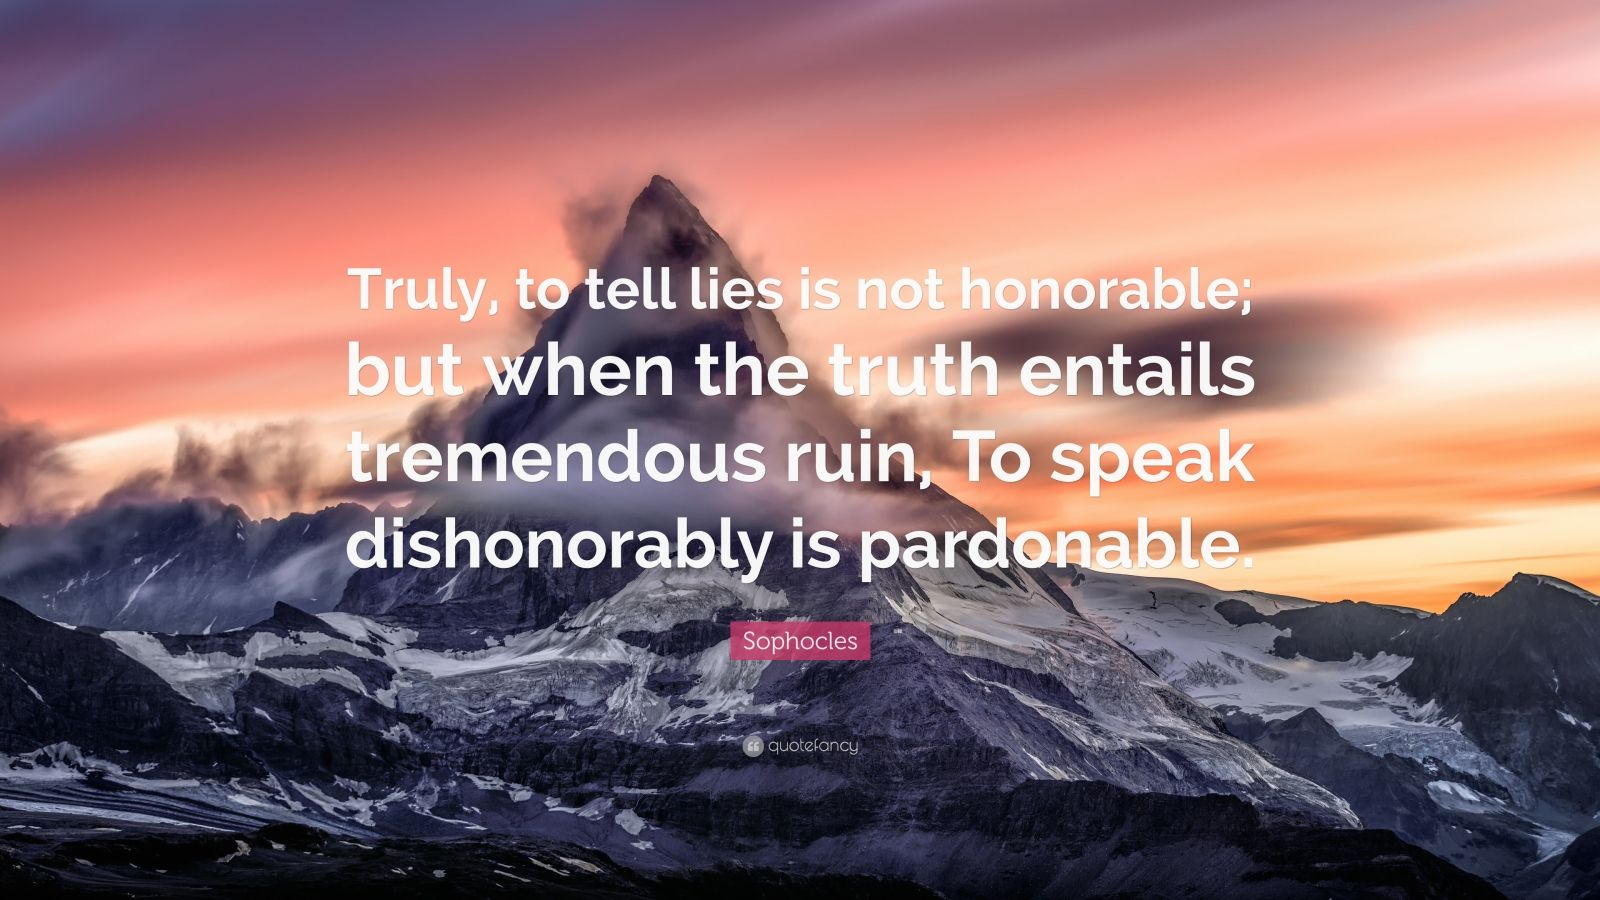 """Sophocles Quote: """"Truly, to tell lies is not honorable; but when the truth entails tremendous ruin, To speak dishonorably is pardonable."""""""